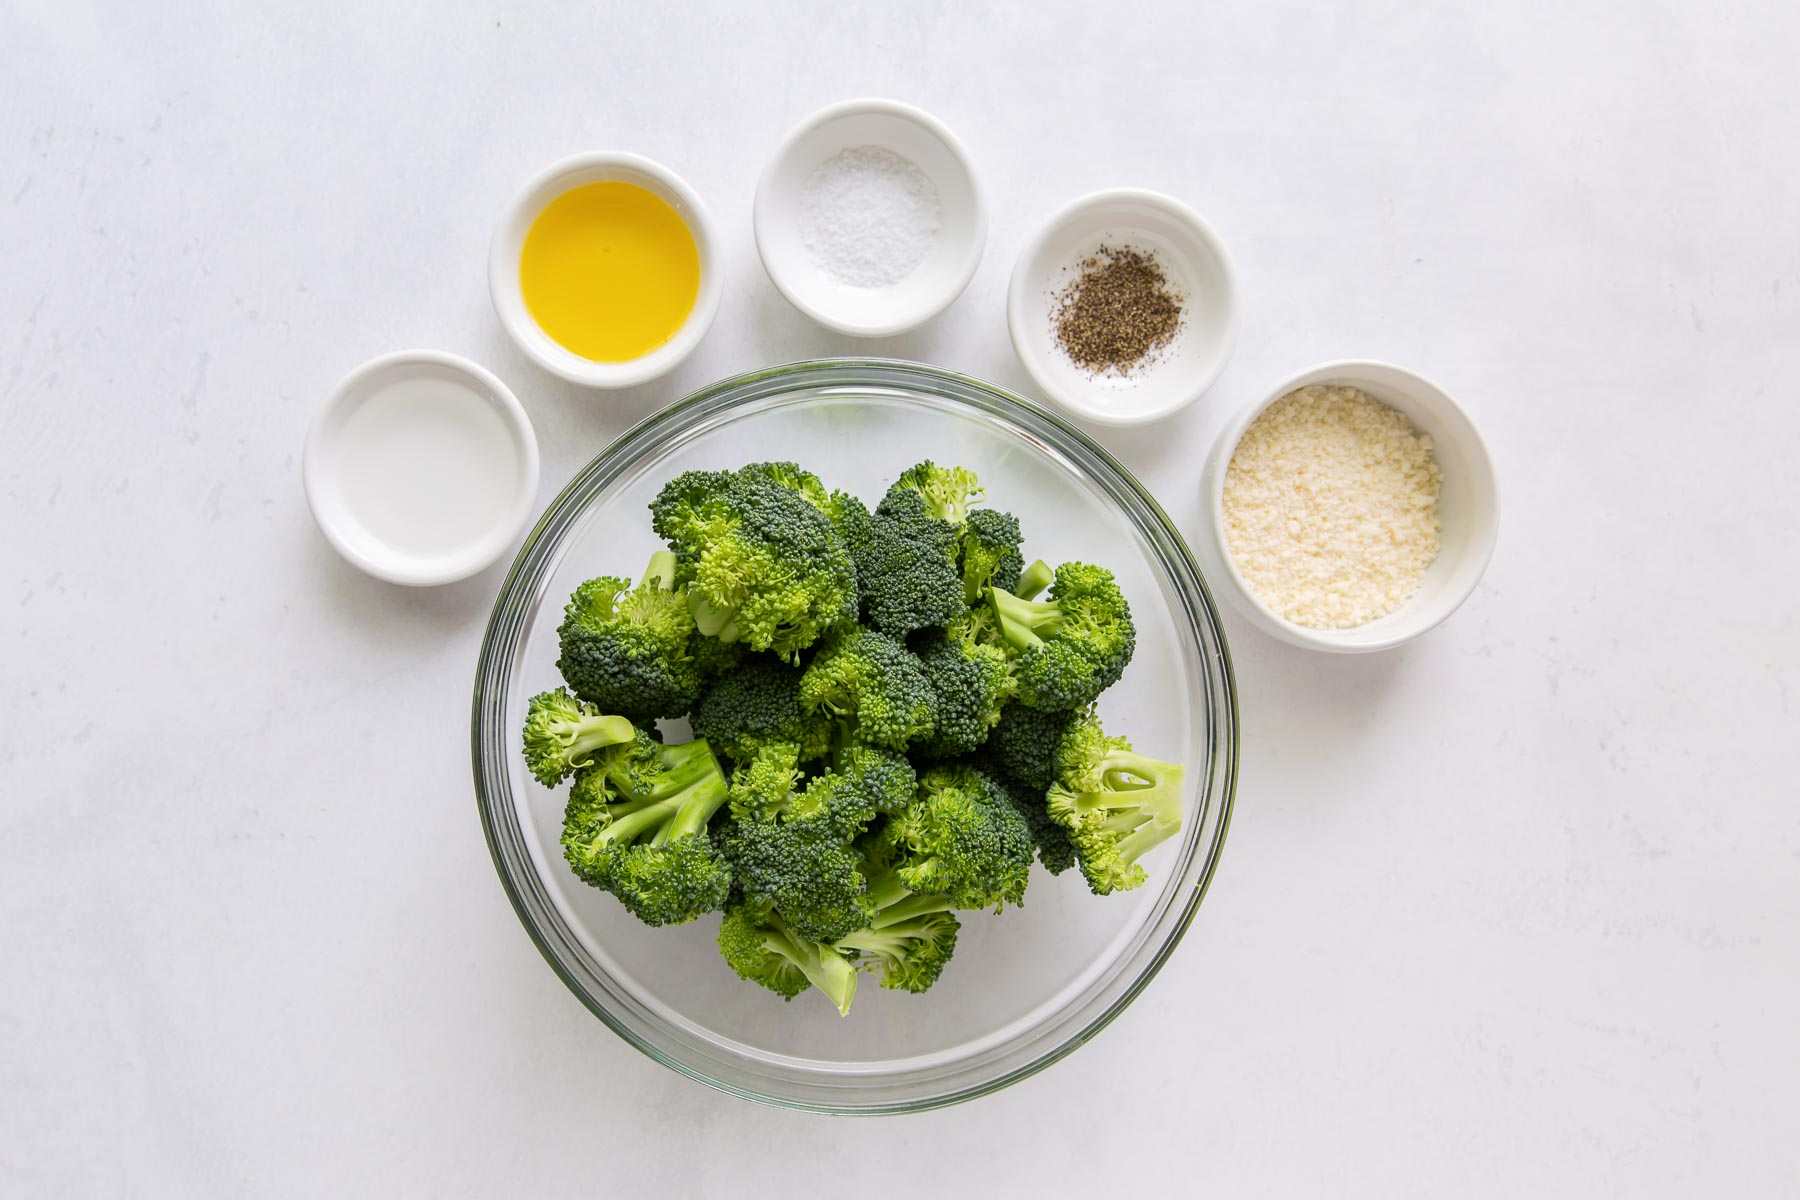 ingredients for air fryer broccoli recipe